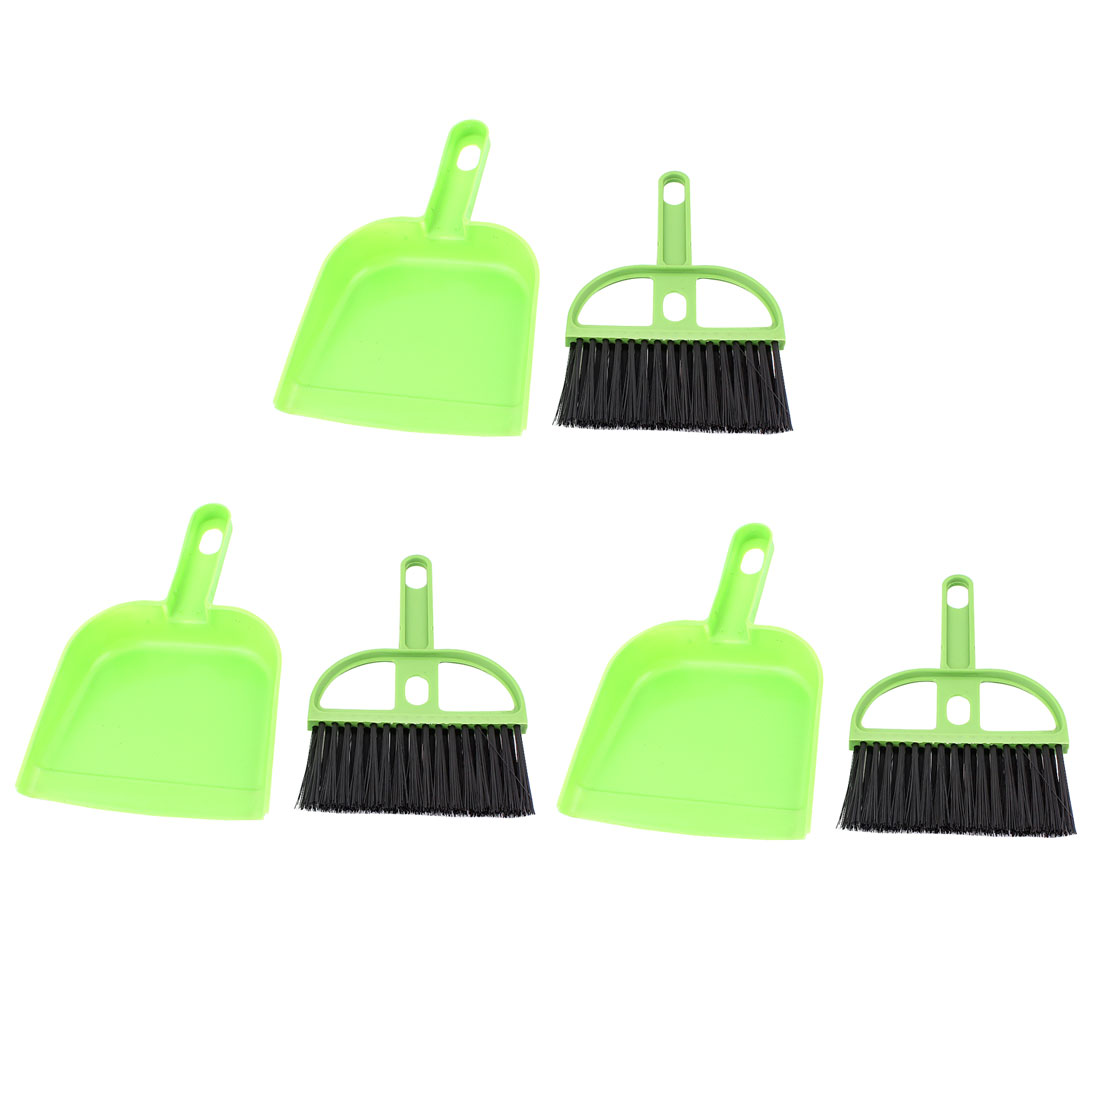 3 Pcs Portable PC Desk Computer Keyboard Duster Cleaning Cleaner Brush Green